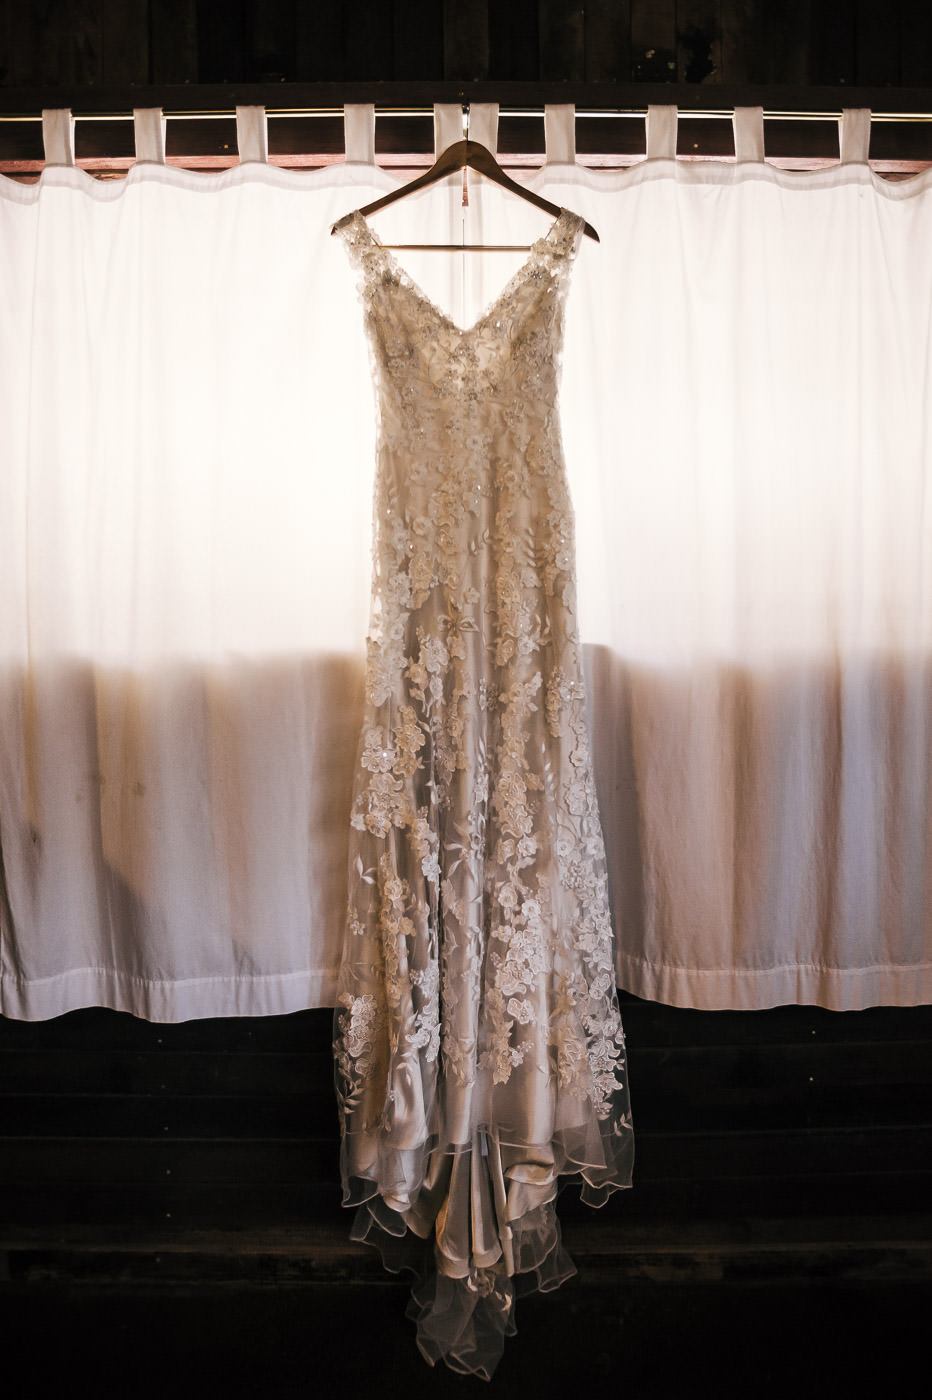 brides beautiful dress for the wedding ceremony backlit by window light as it hangs in the dressing room.